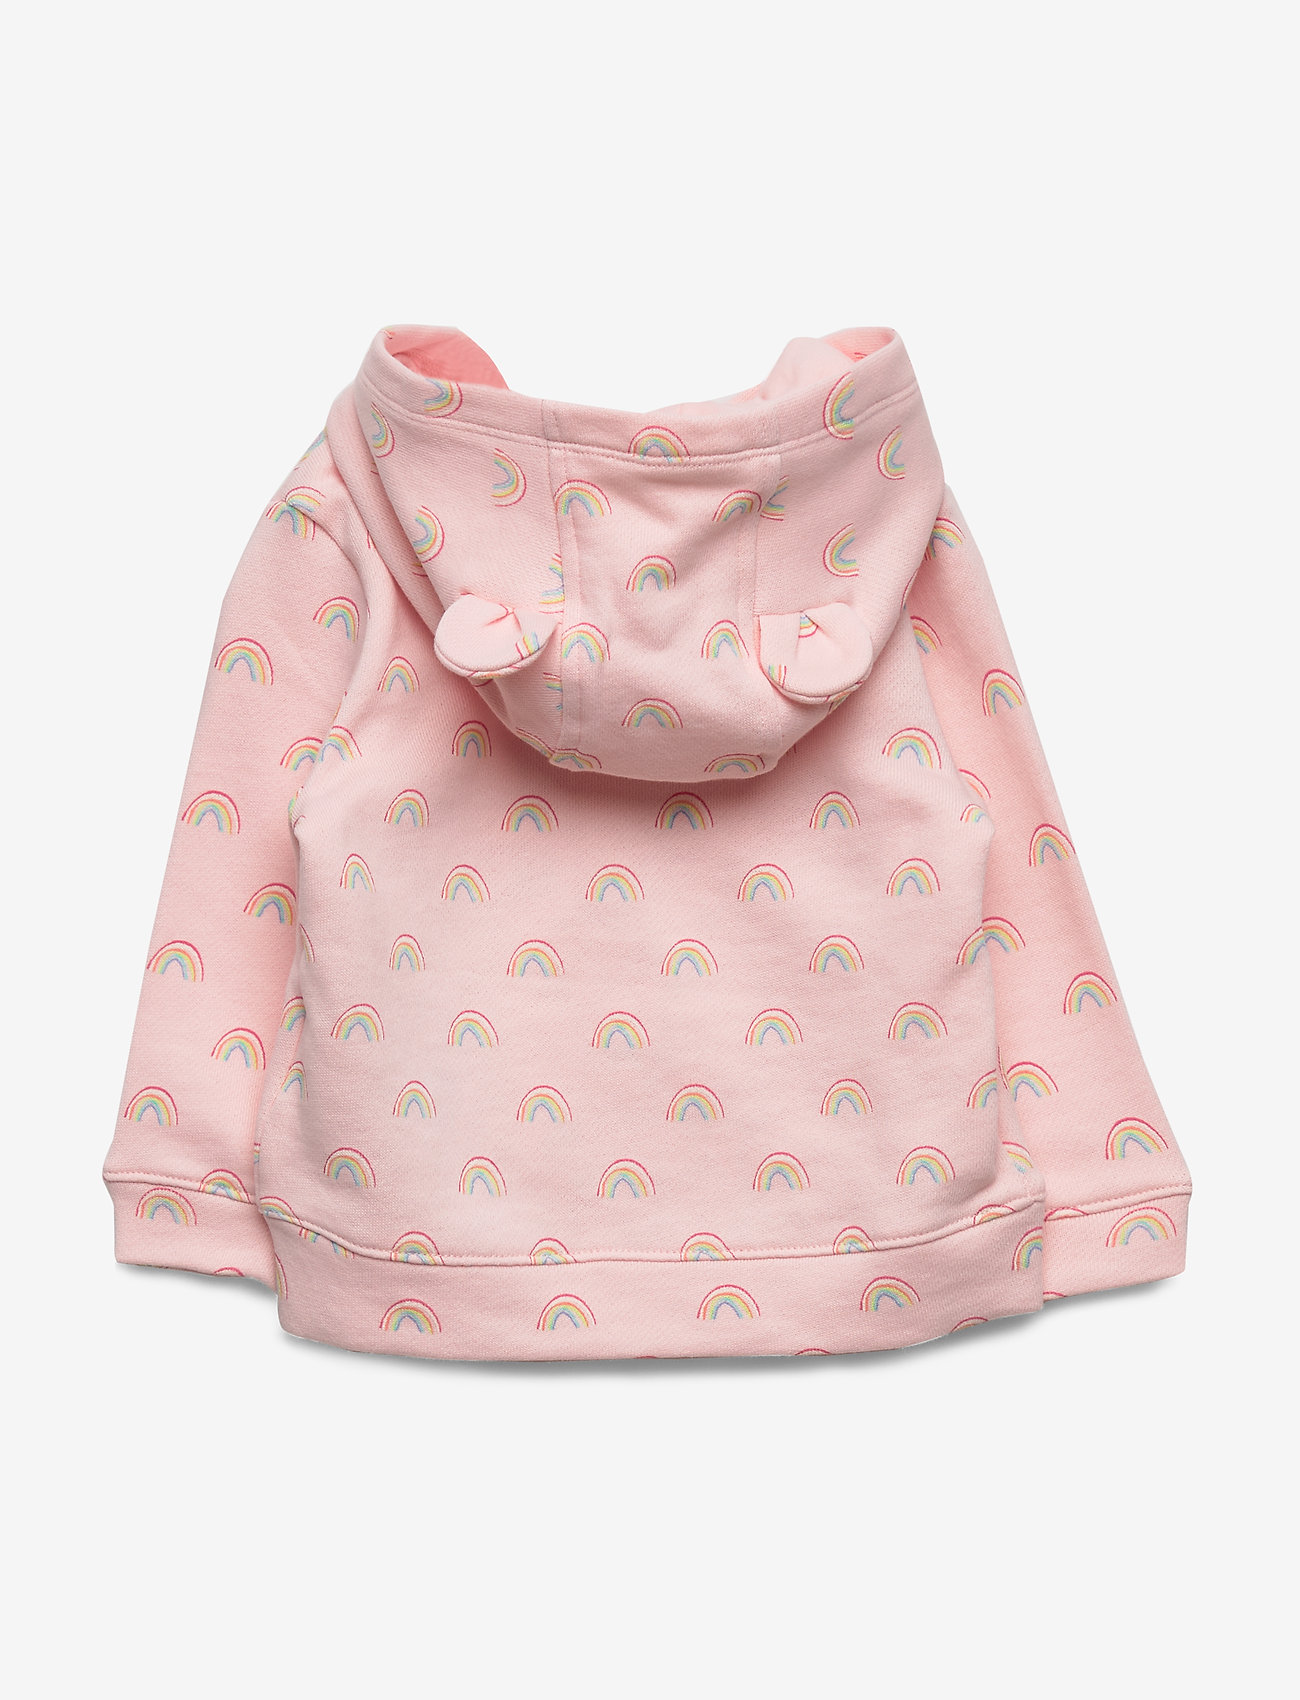 Baby Graphic Hoodie (Pink Cameo) (25.20 €) - GAP 3MBEl